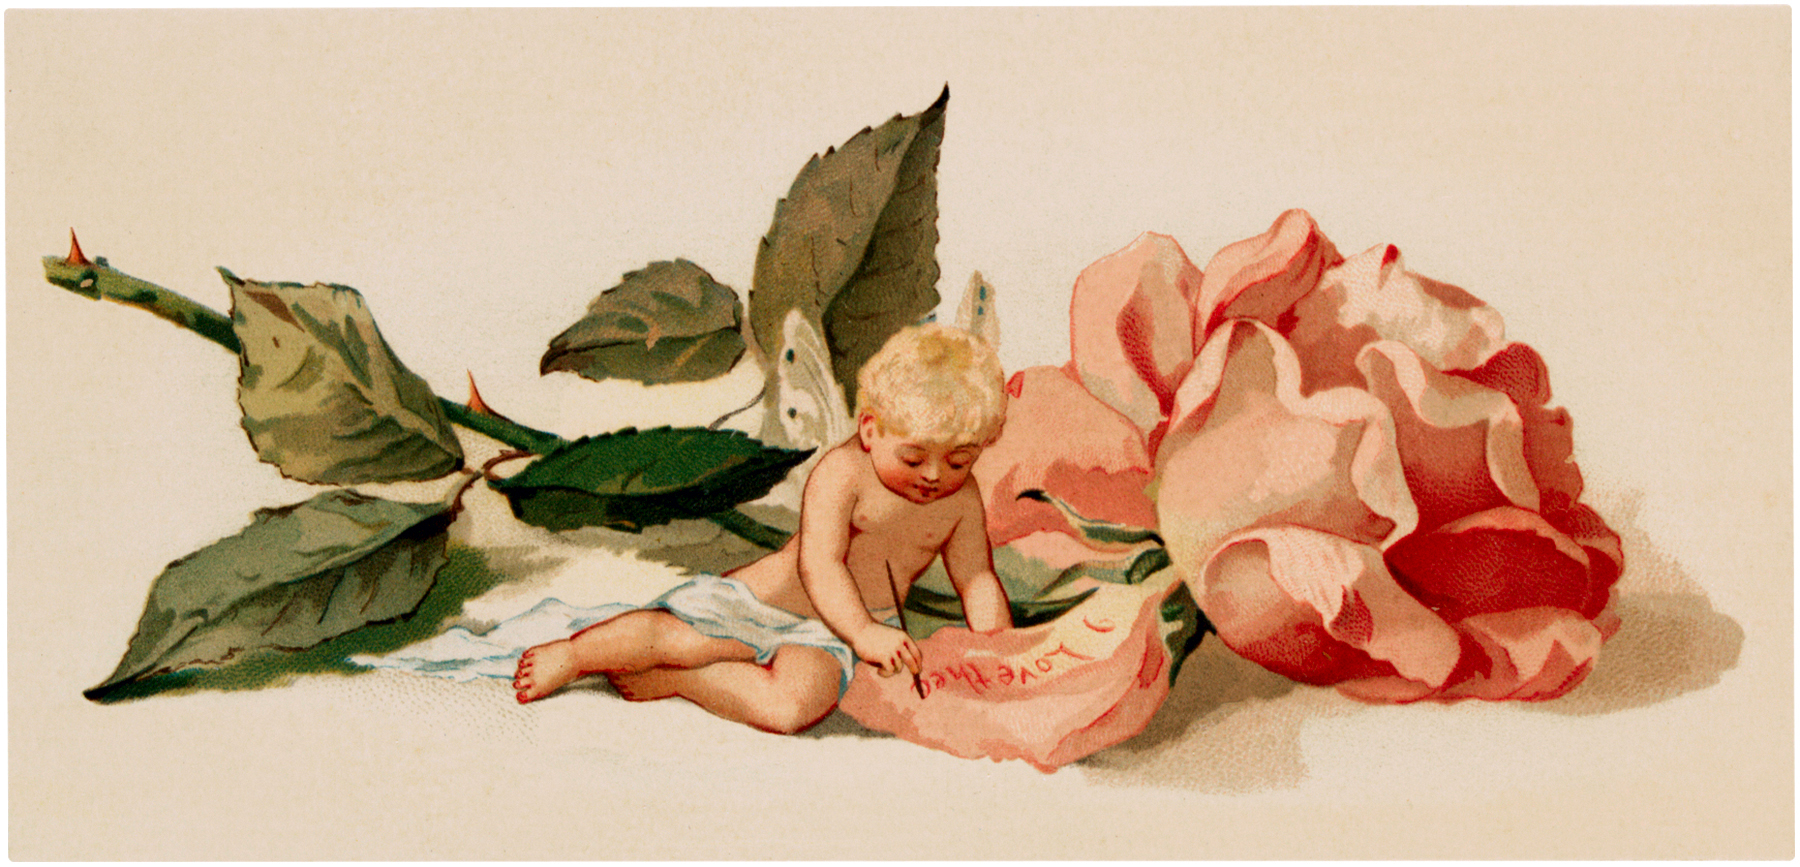 Vintage Rose Fairy Baby Image